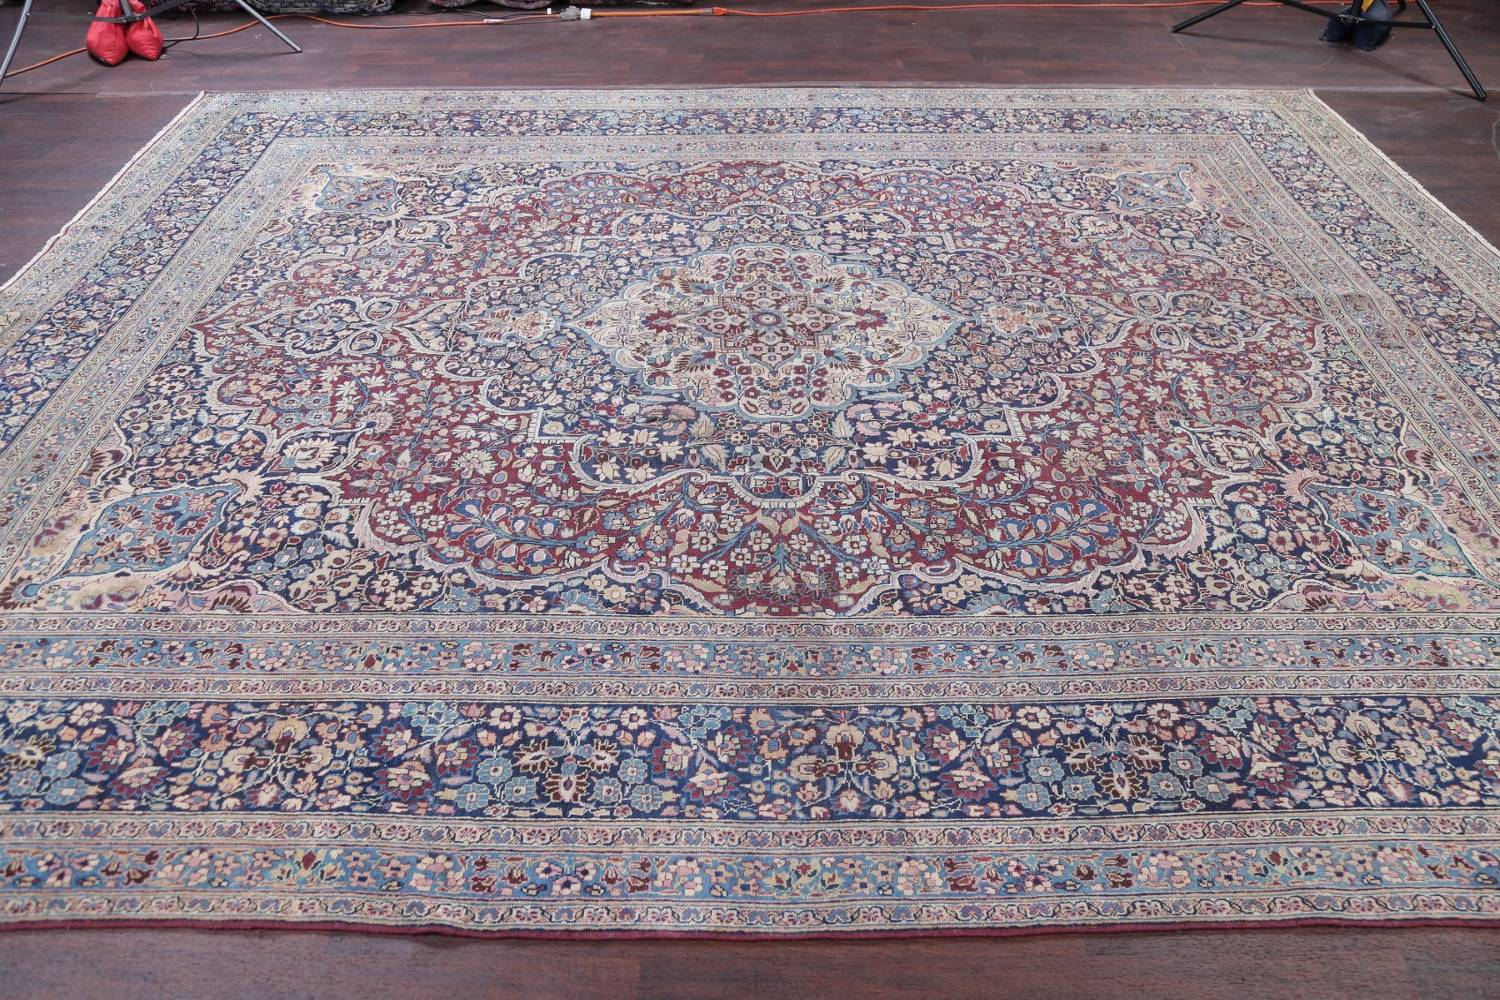 Pre-1900 Antique Floral Mashad Persian Hand-Knotted 10x13 Burgundy Area Rug image 18